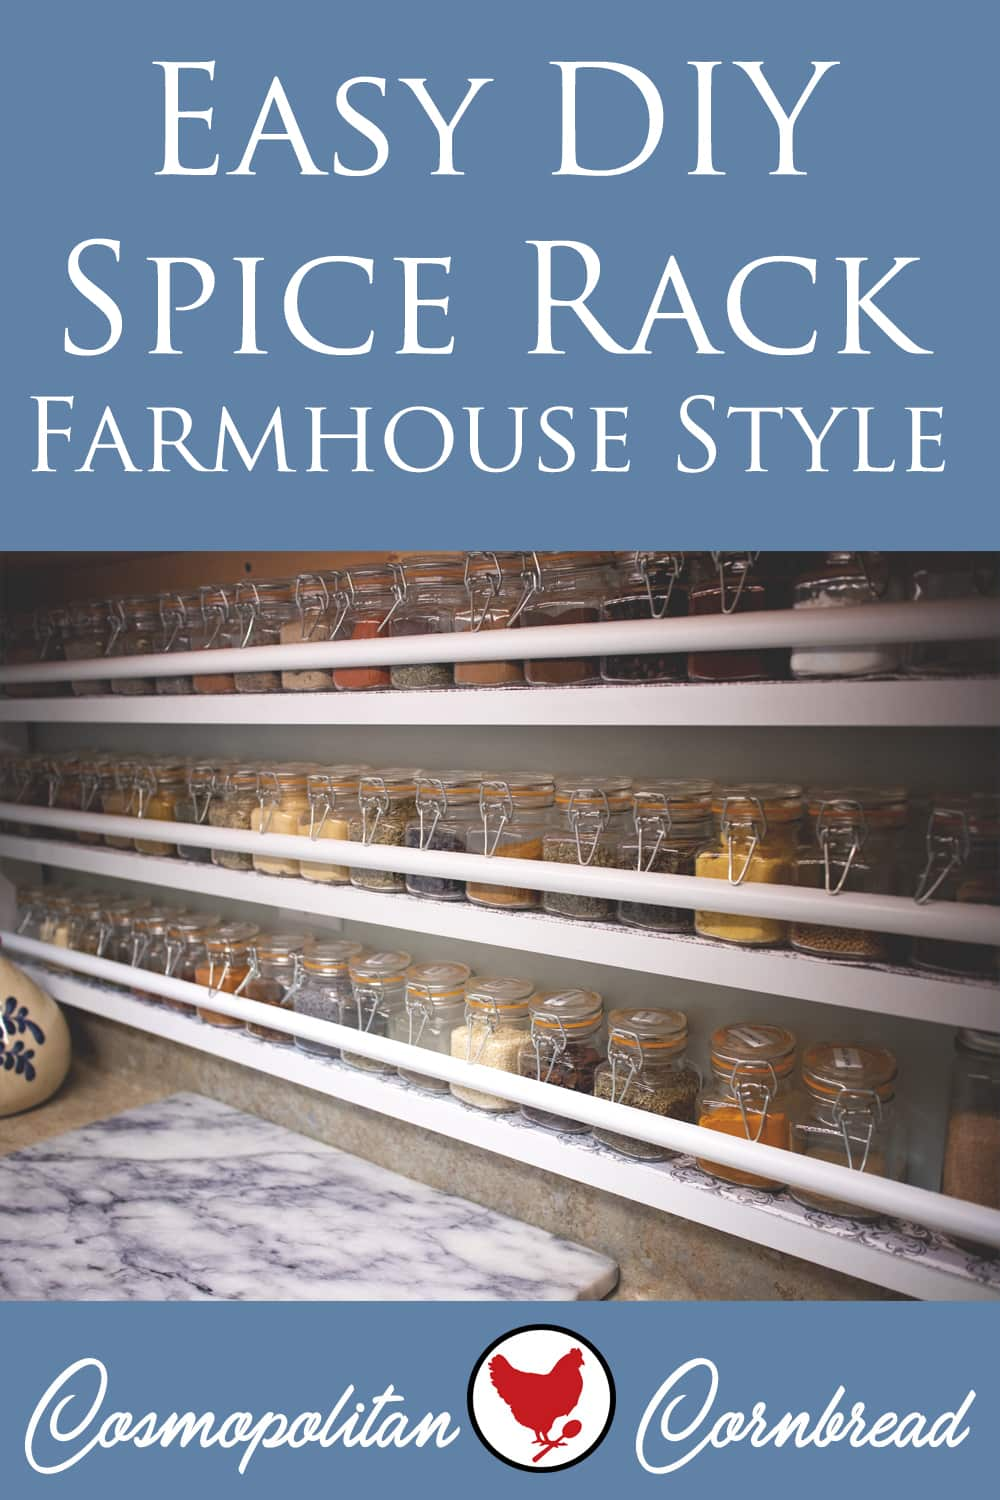 How to Make an Easy DIY Spice Rack - Farmhouse Style